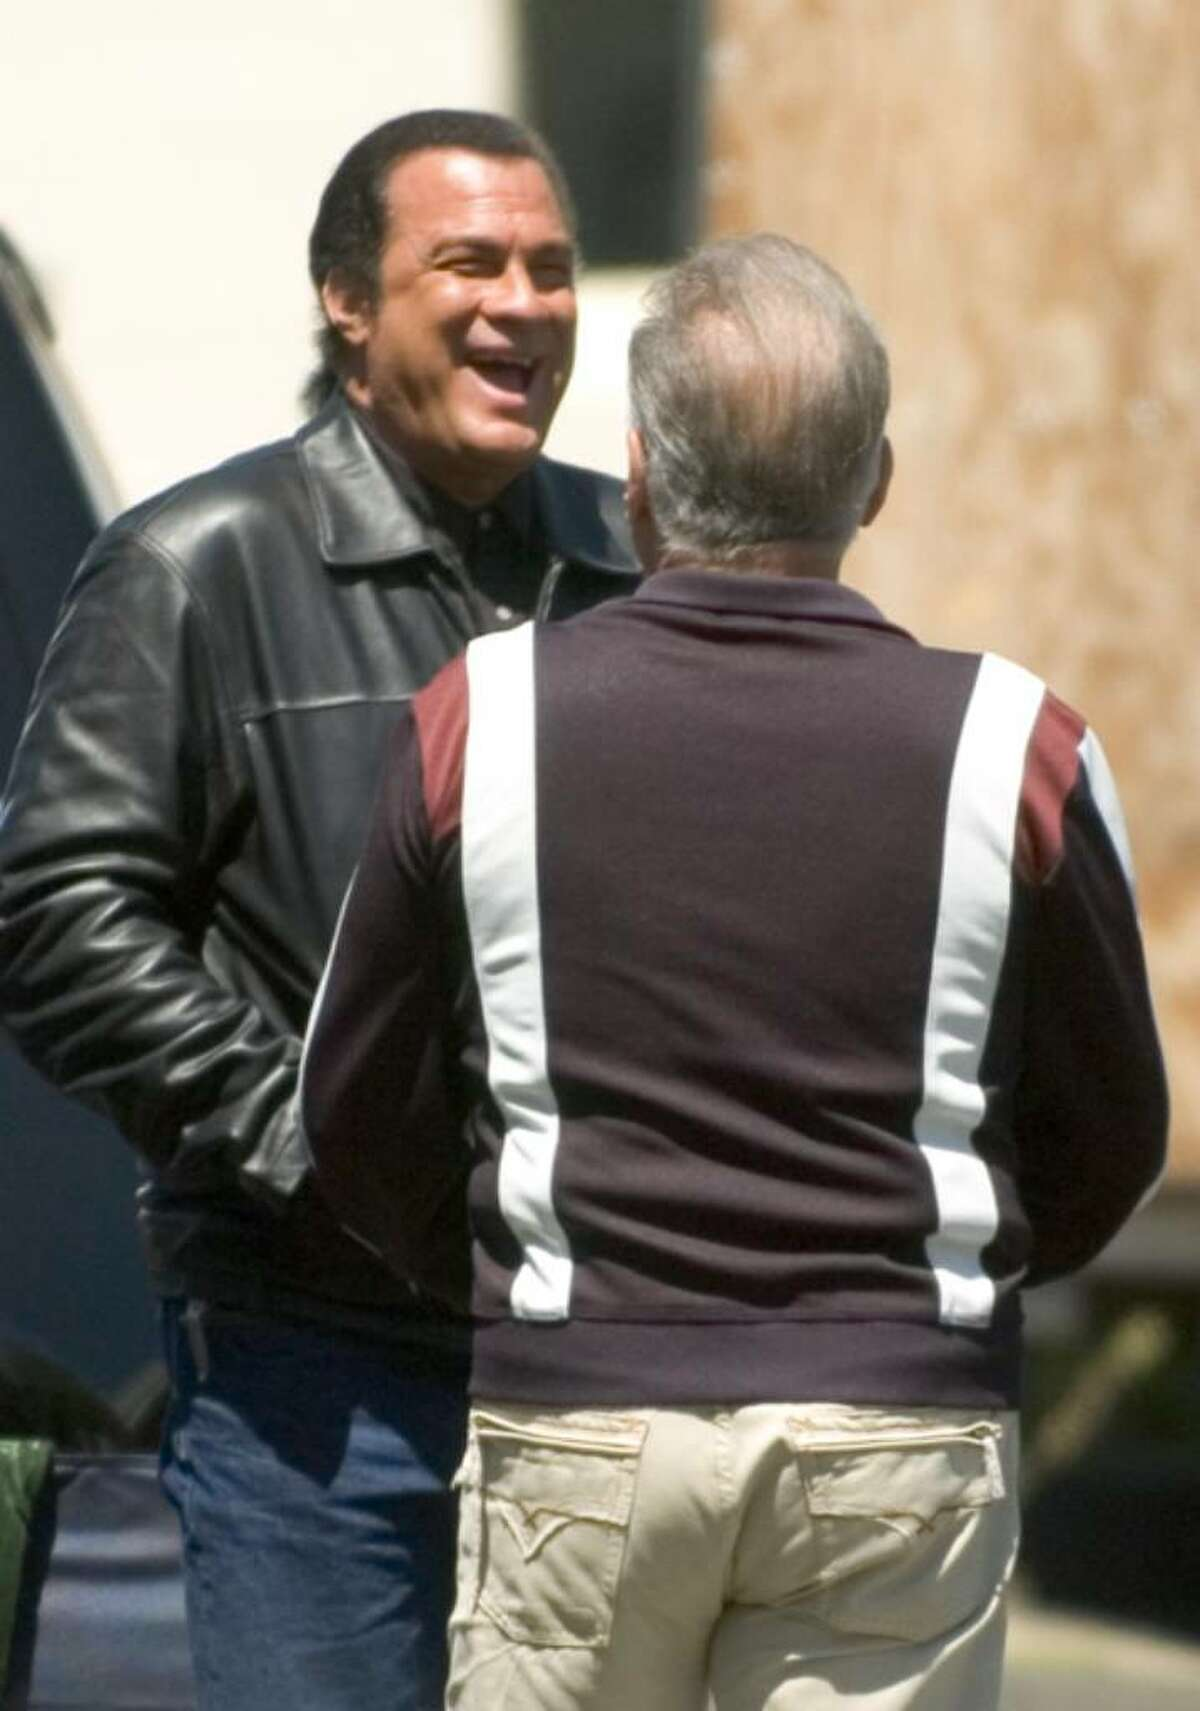 Steven Seagal, left, speaks with actor, Arthur J. Nascarella, right, during filming of Marker, a Steven Seagal film in downtown Stamford, Conn. on Monday, May 7, 2007.